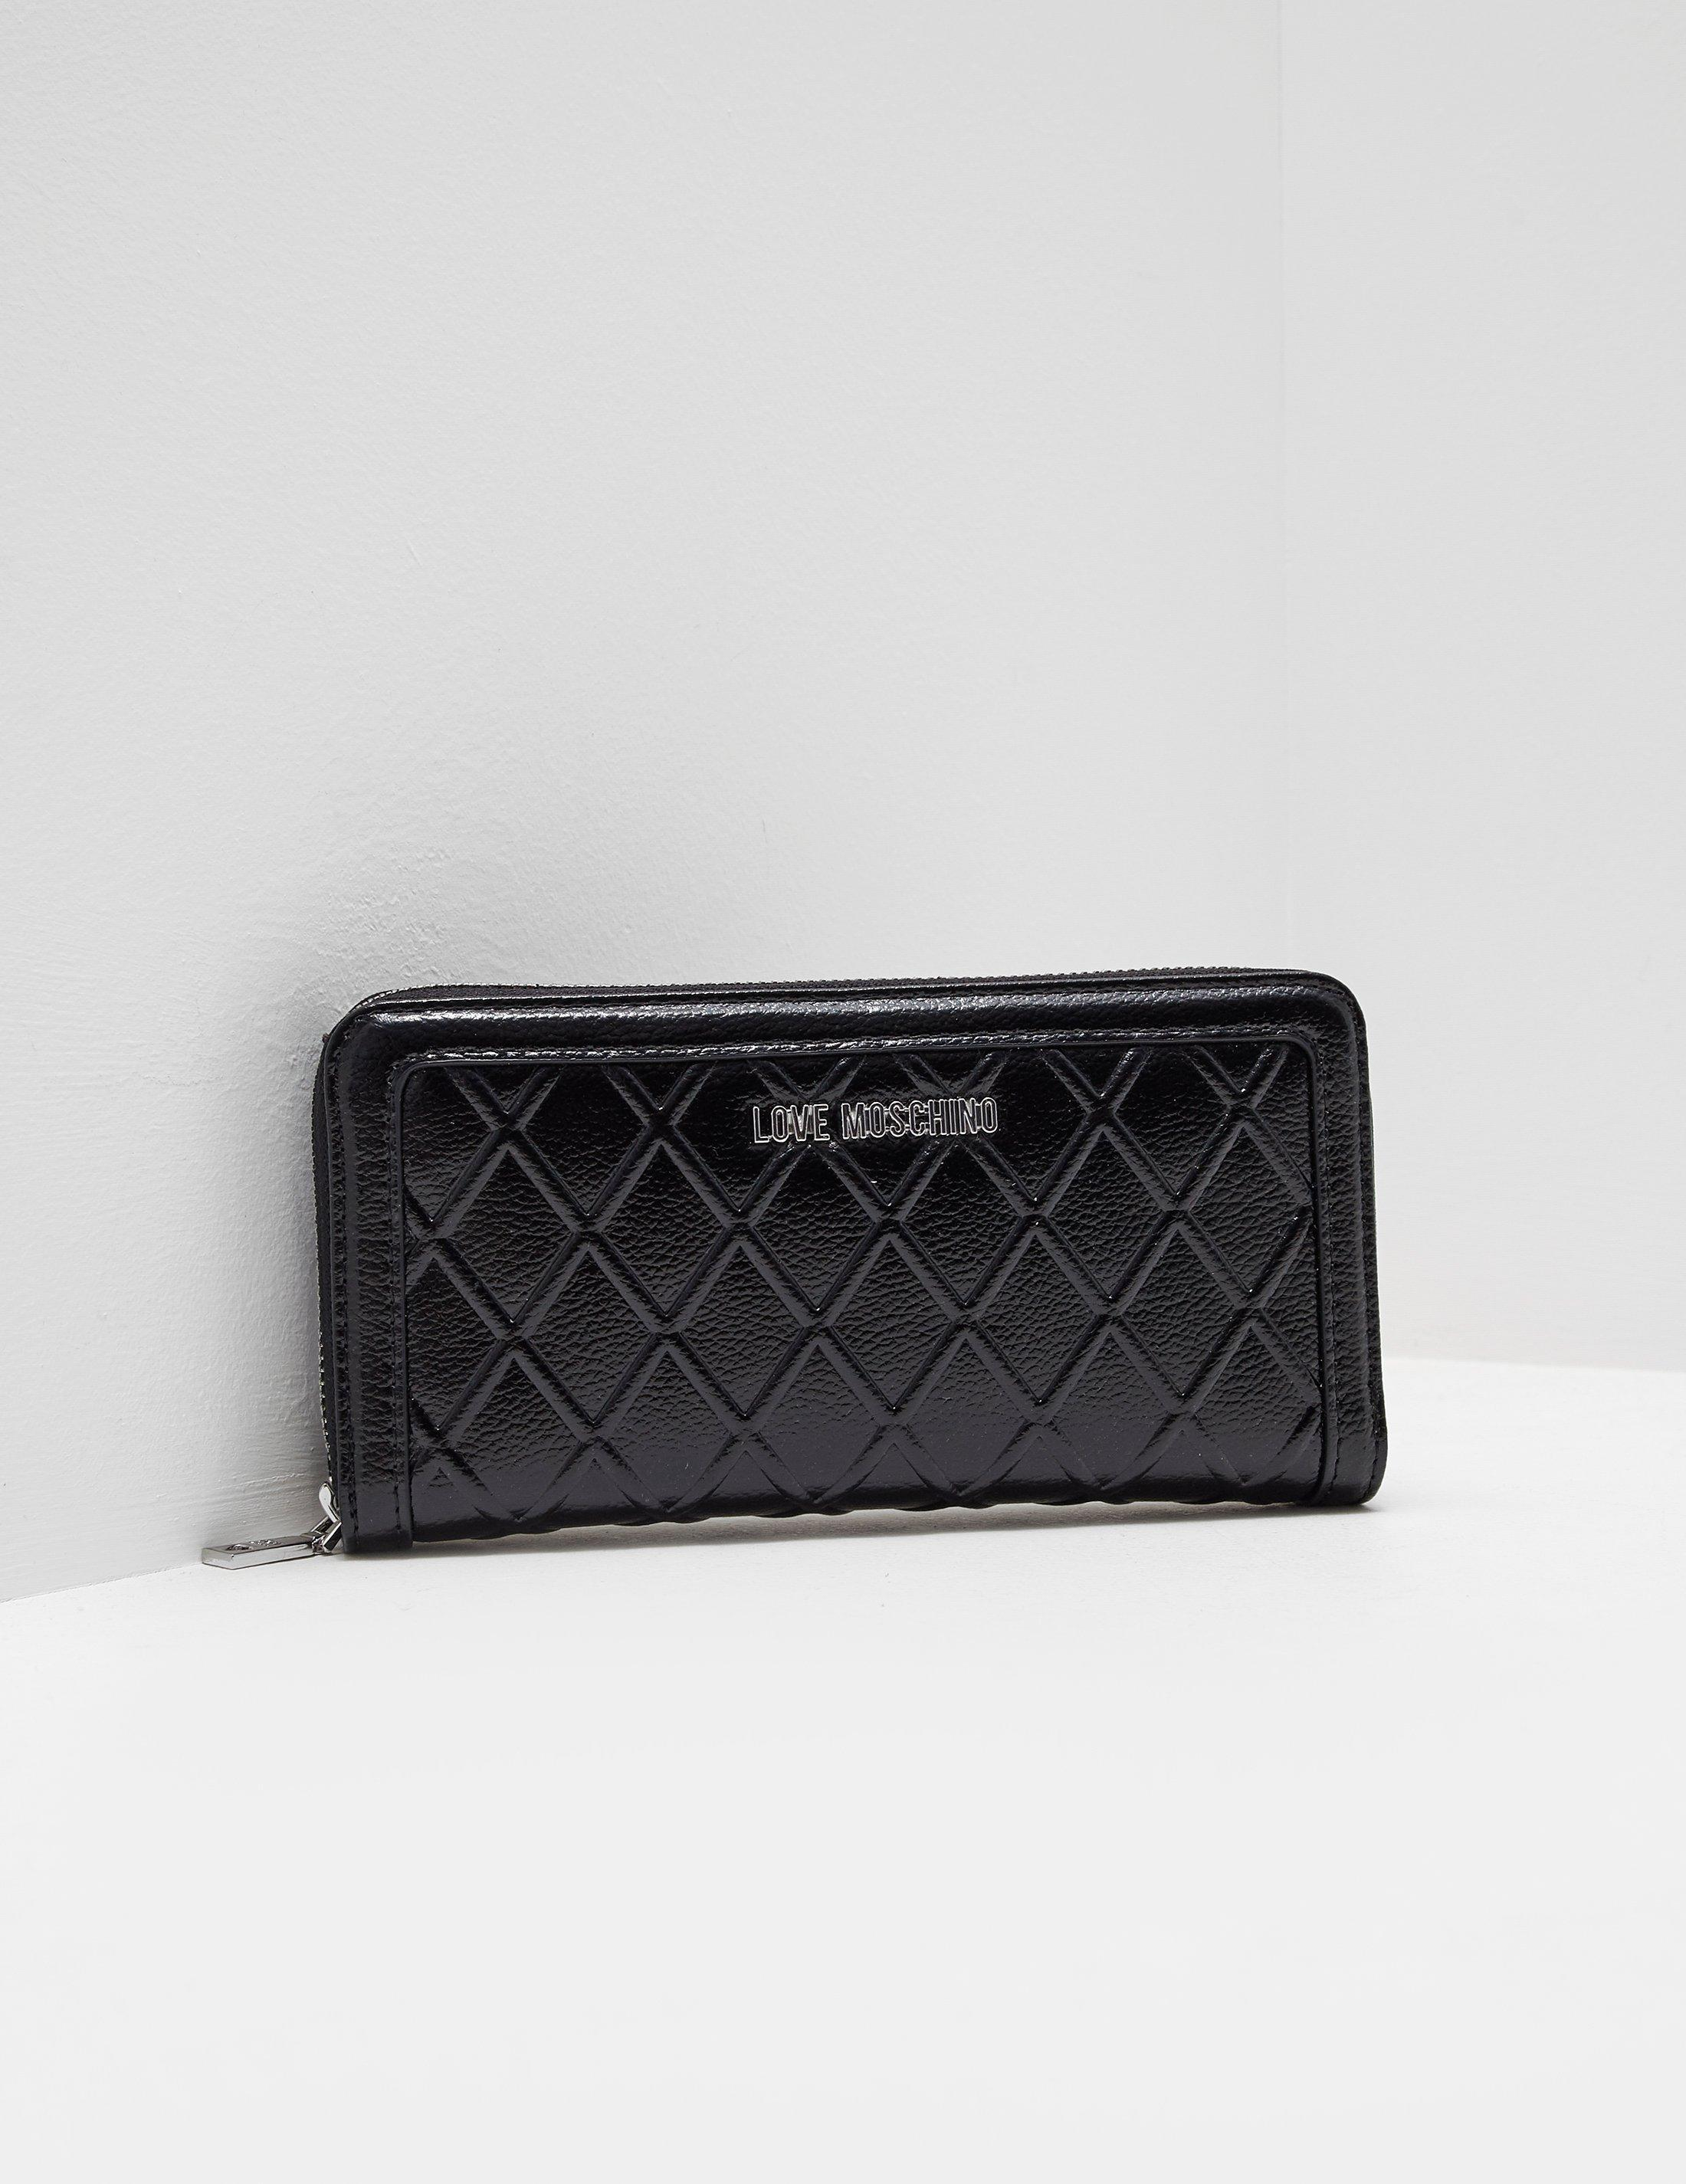 59b66da6e8b5 Love Moschino Womens Structure Quilted Purse - Online Exclusive ...